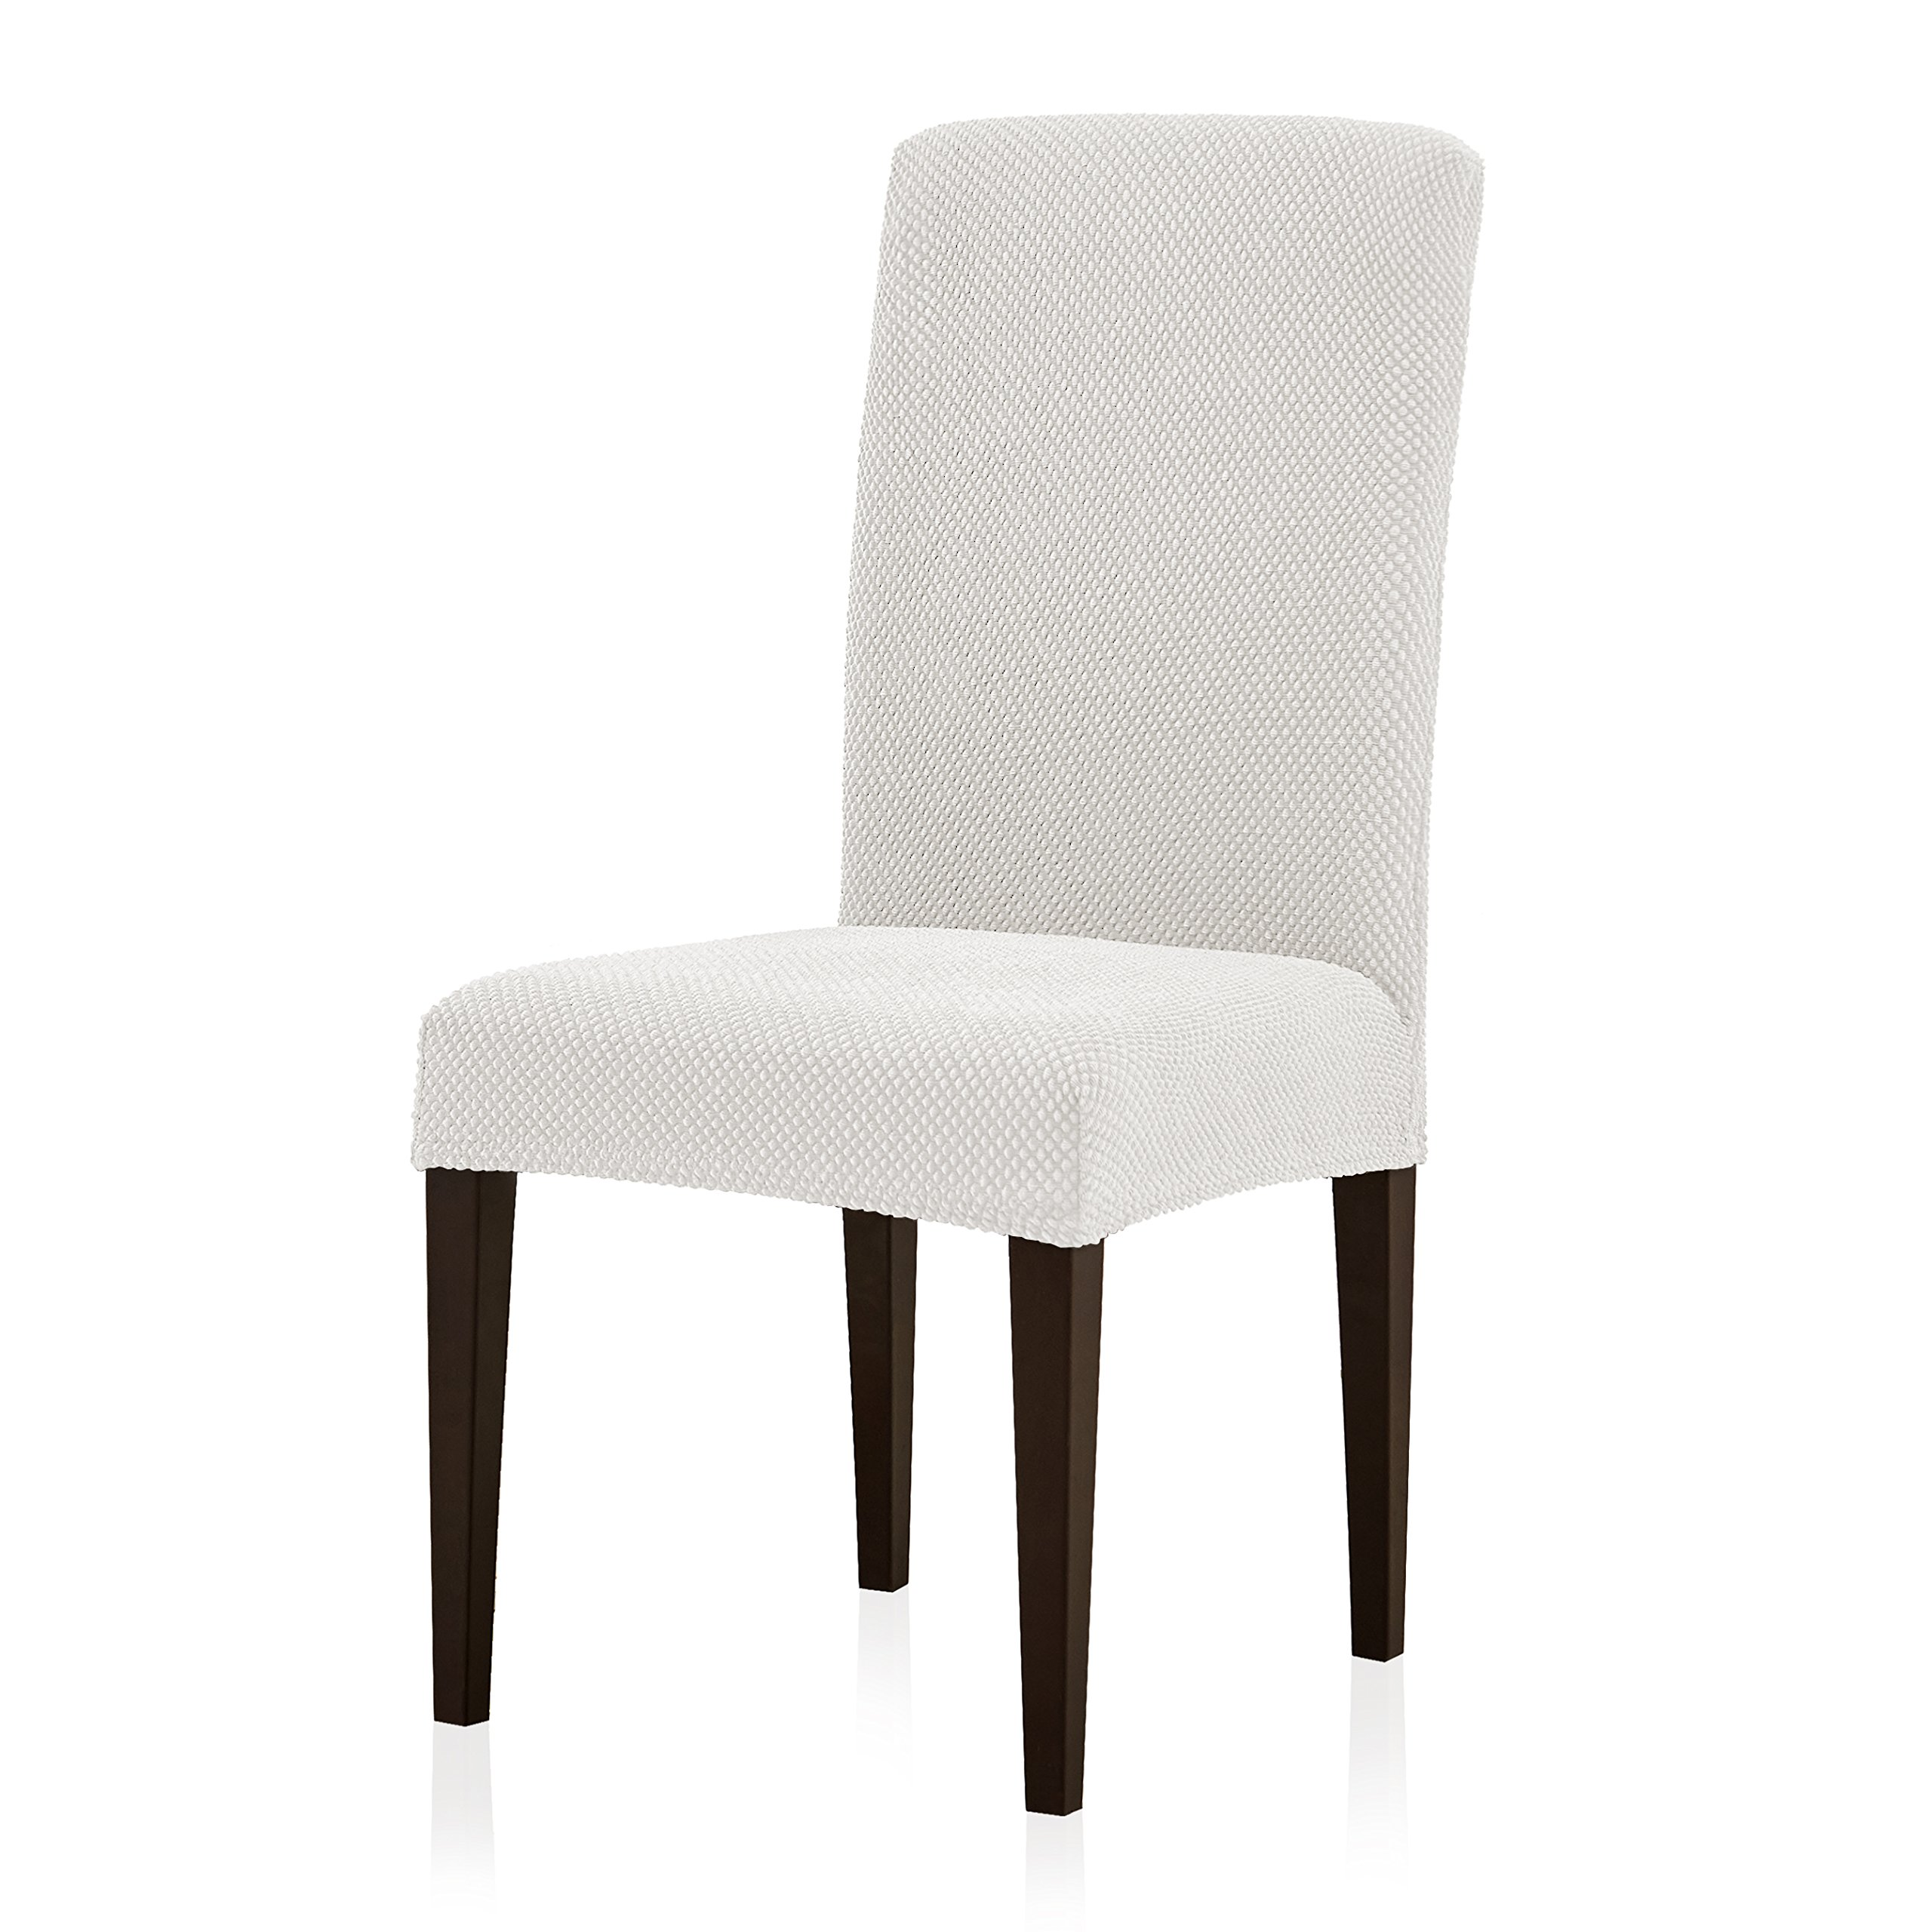 Subrtex Stretch Dining Room Chair Slipcovers (4, Creme Jacquard)